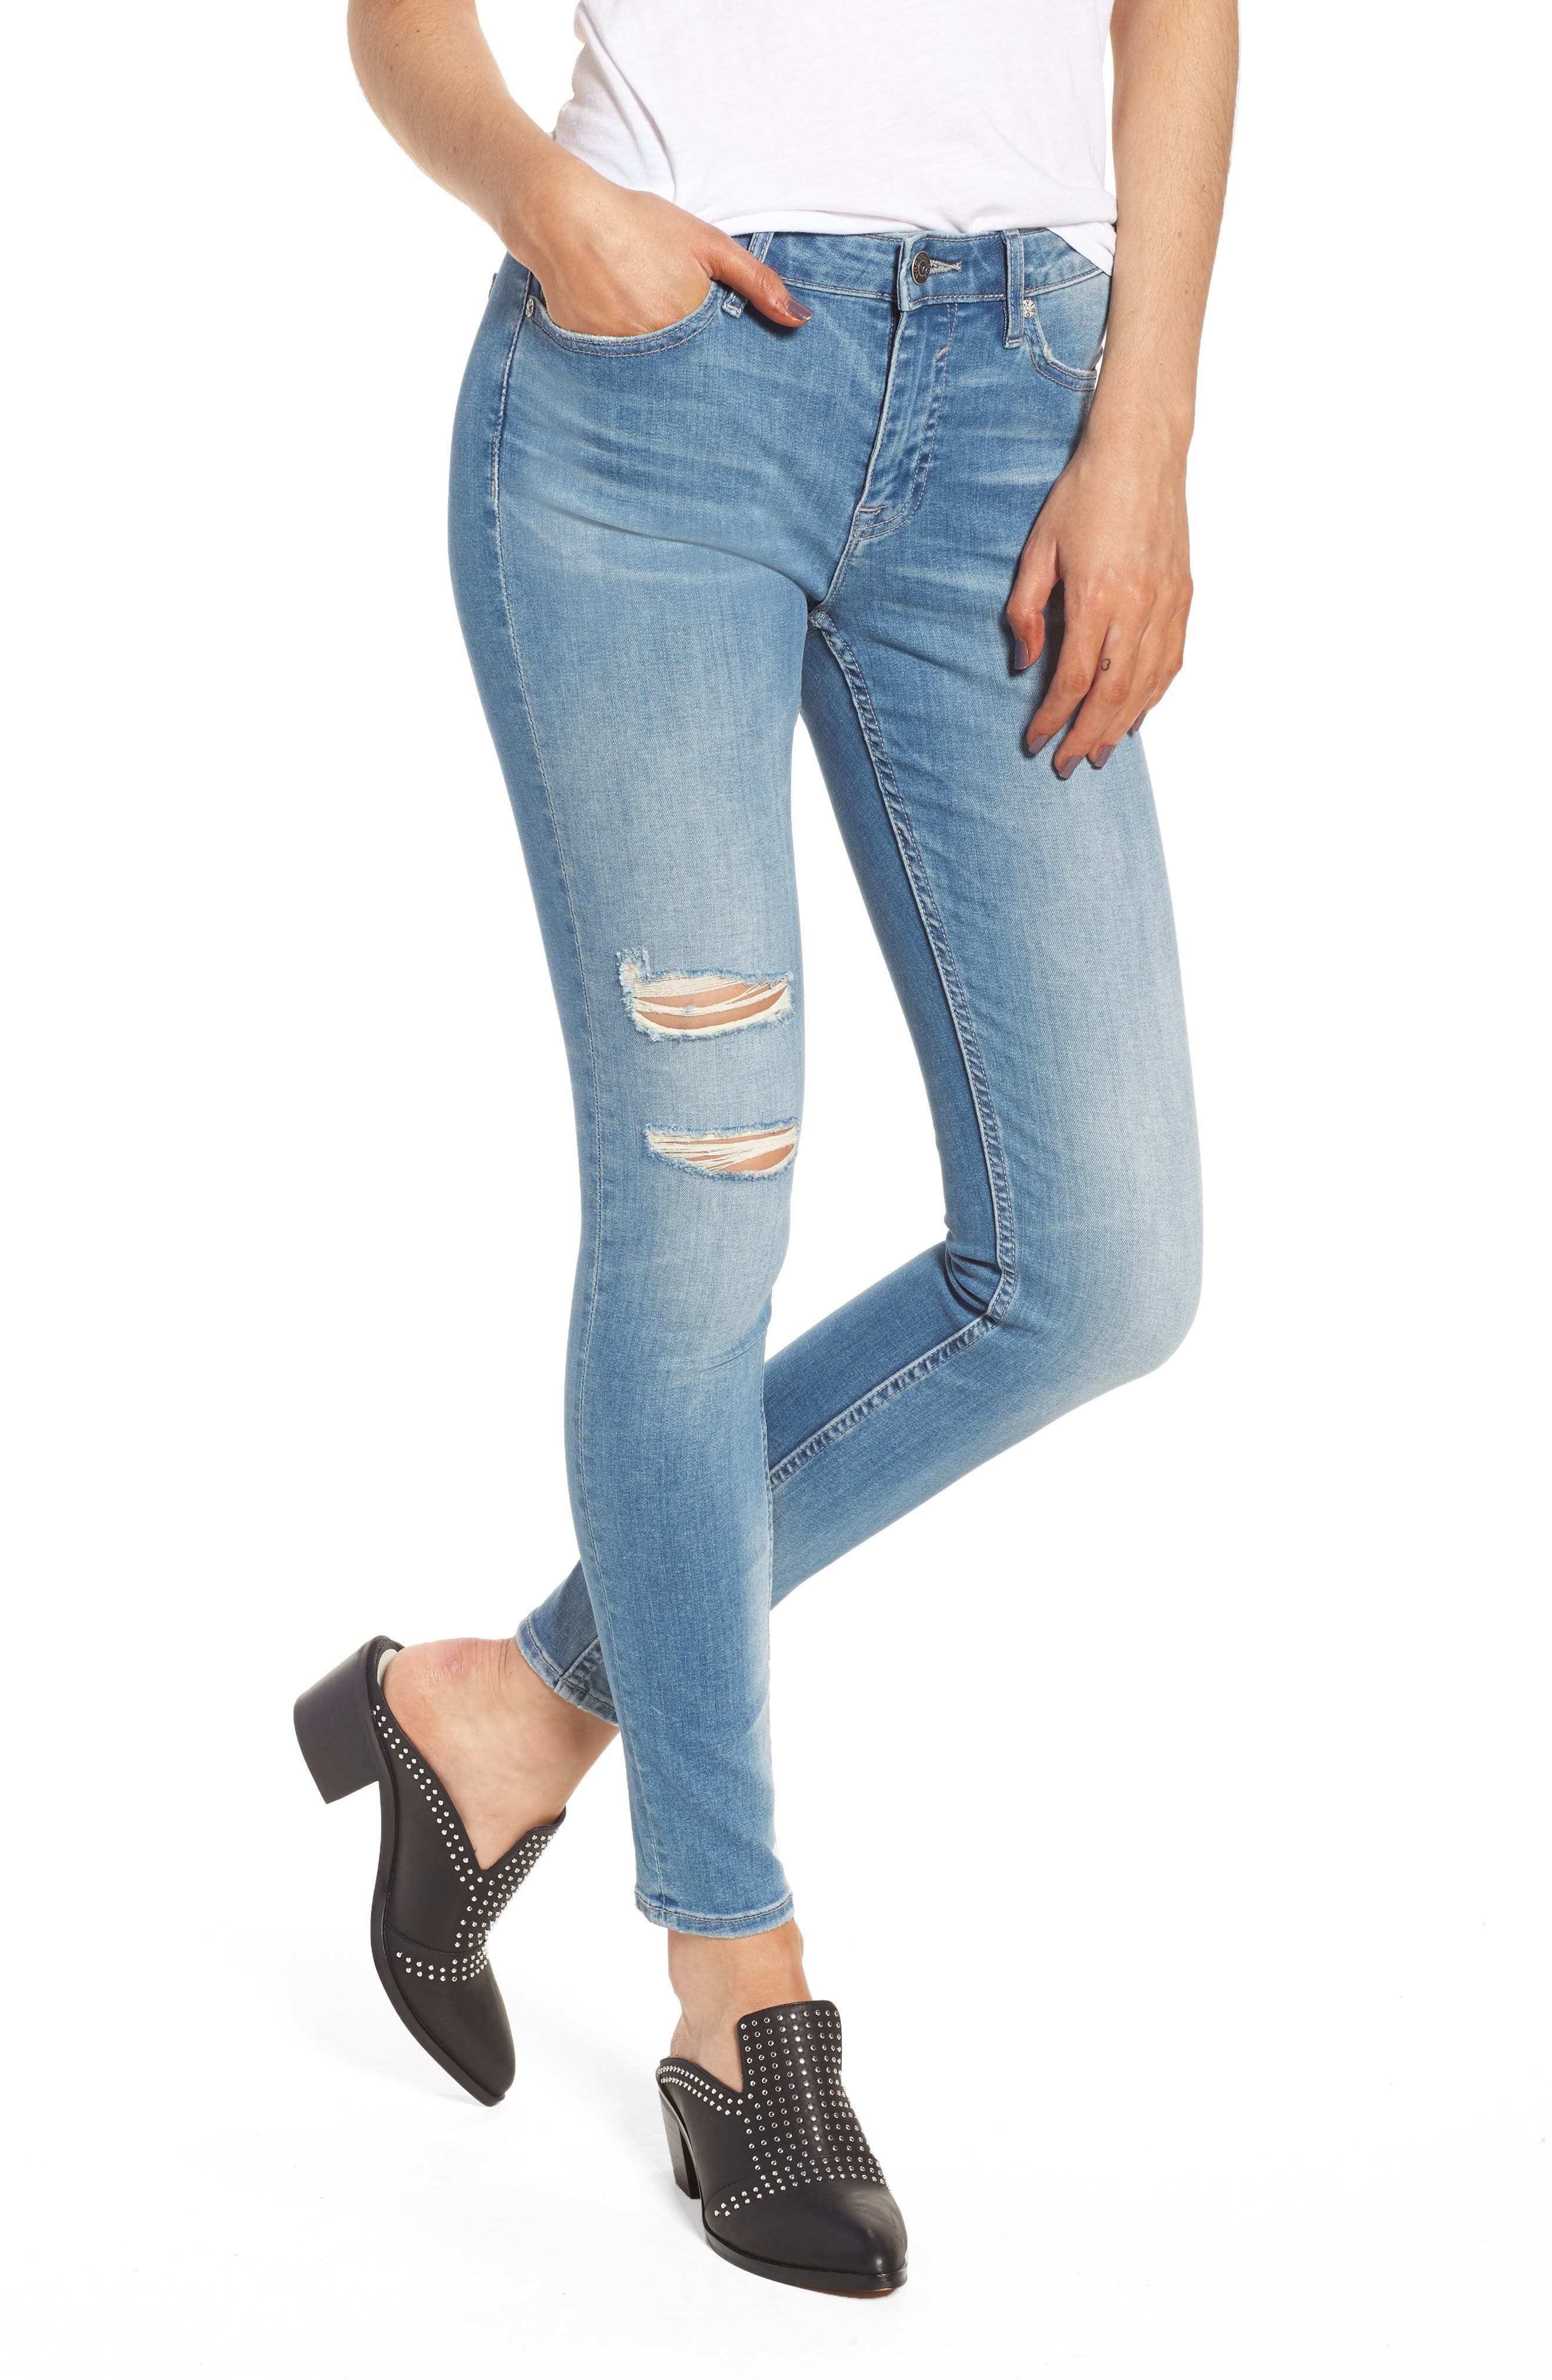 Marley Ripped Skinny Jeans,                             Main thumbnail 1, color,                             Light Wash